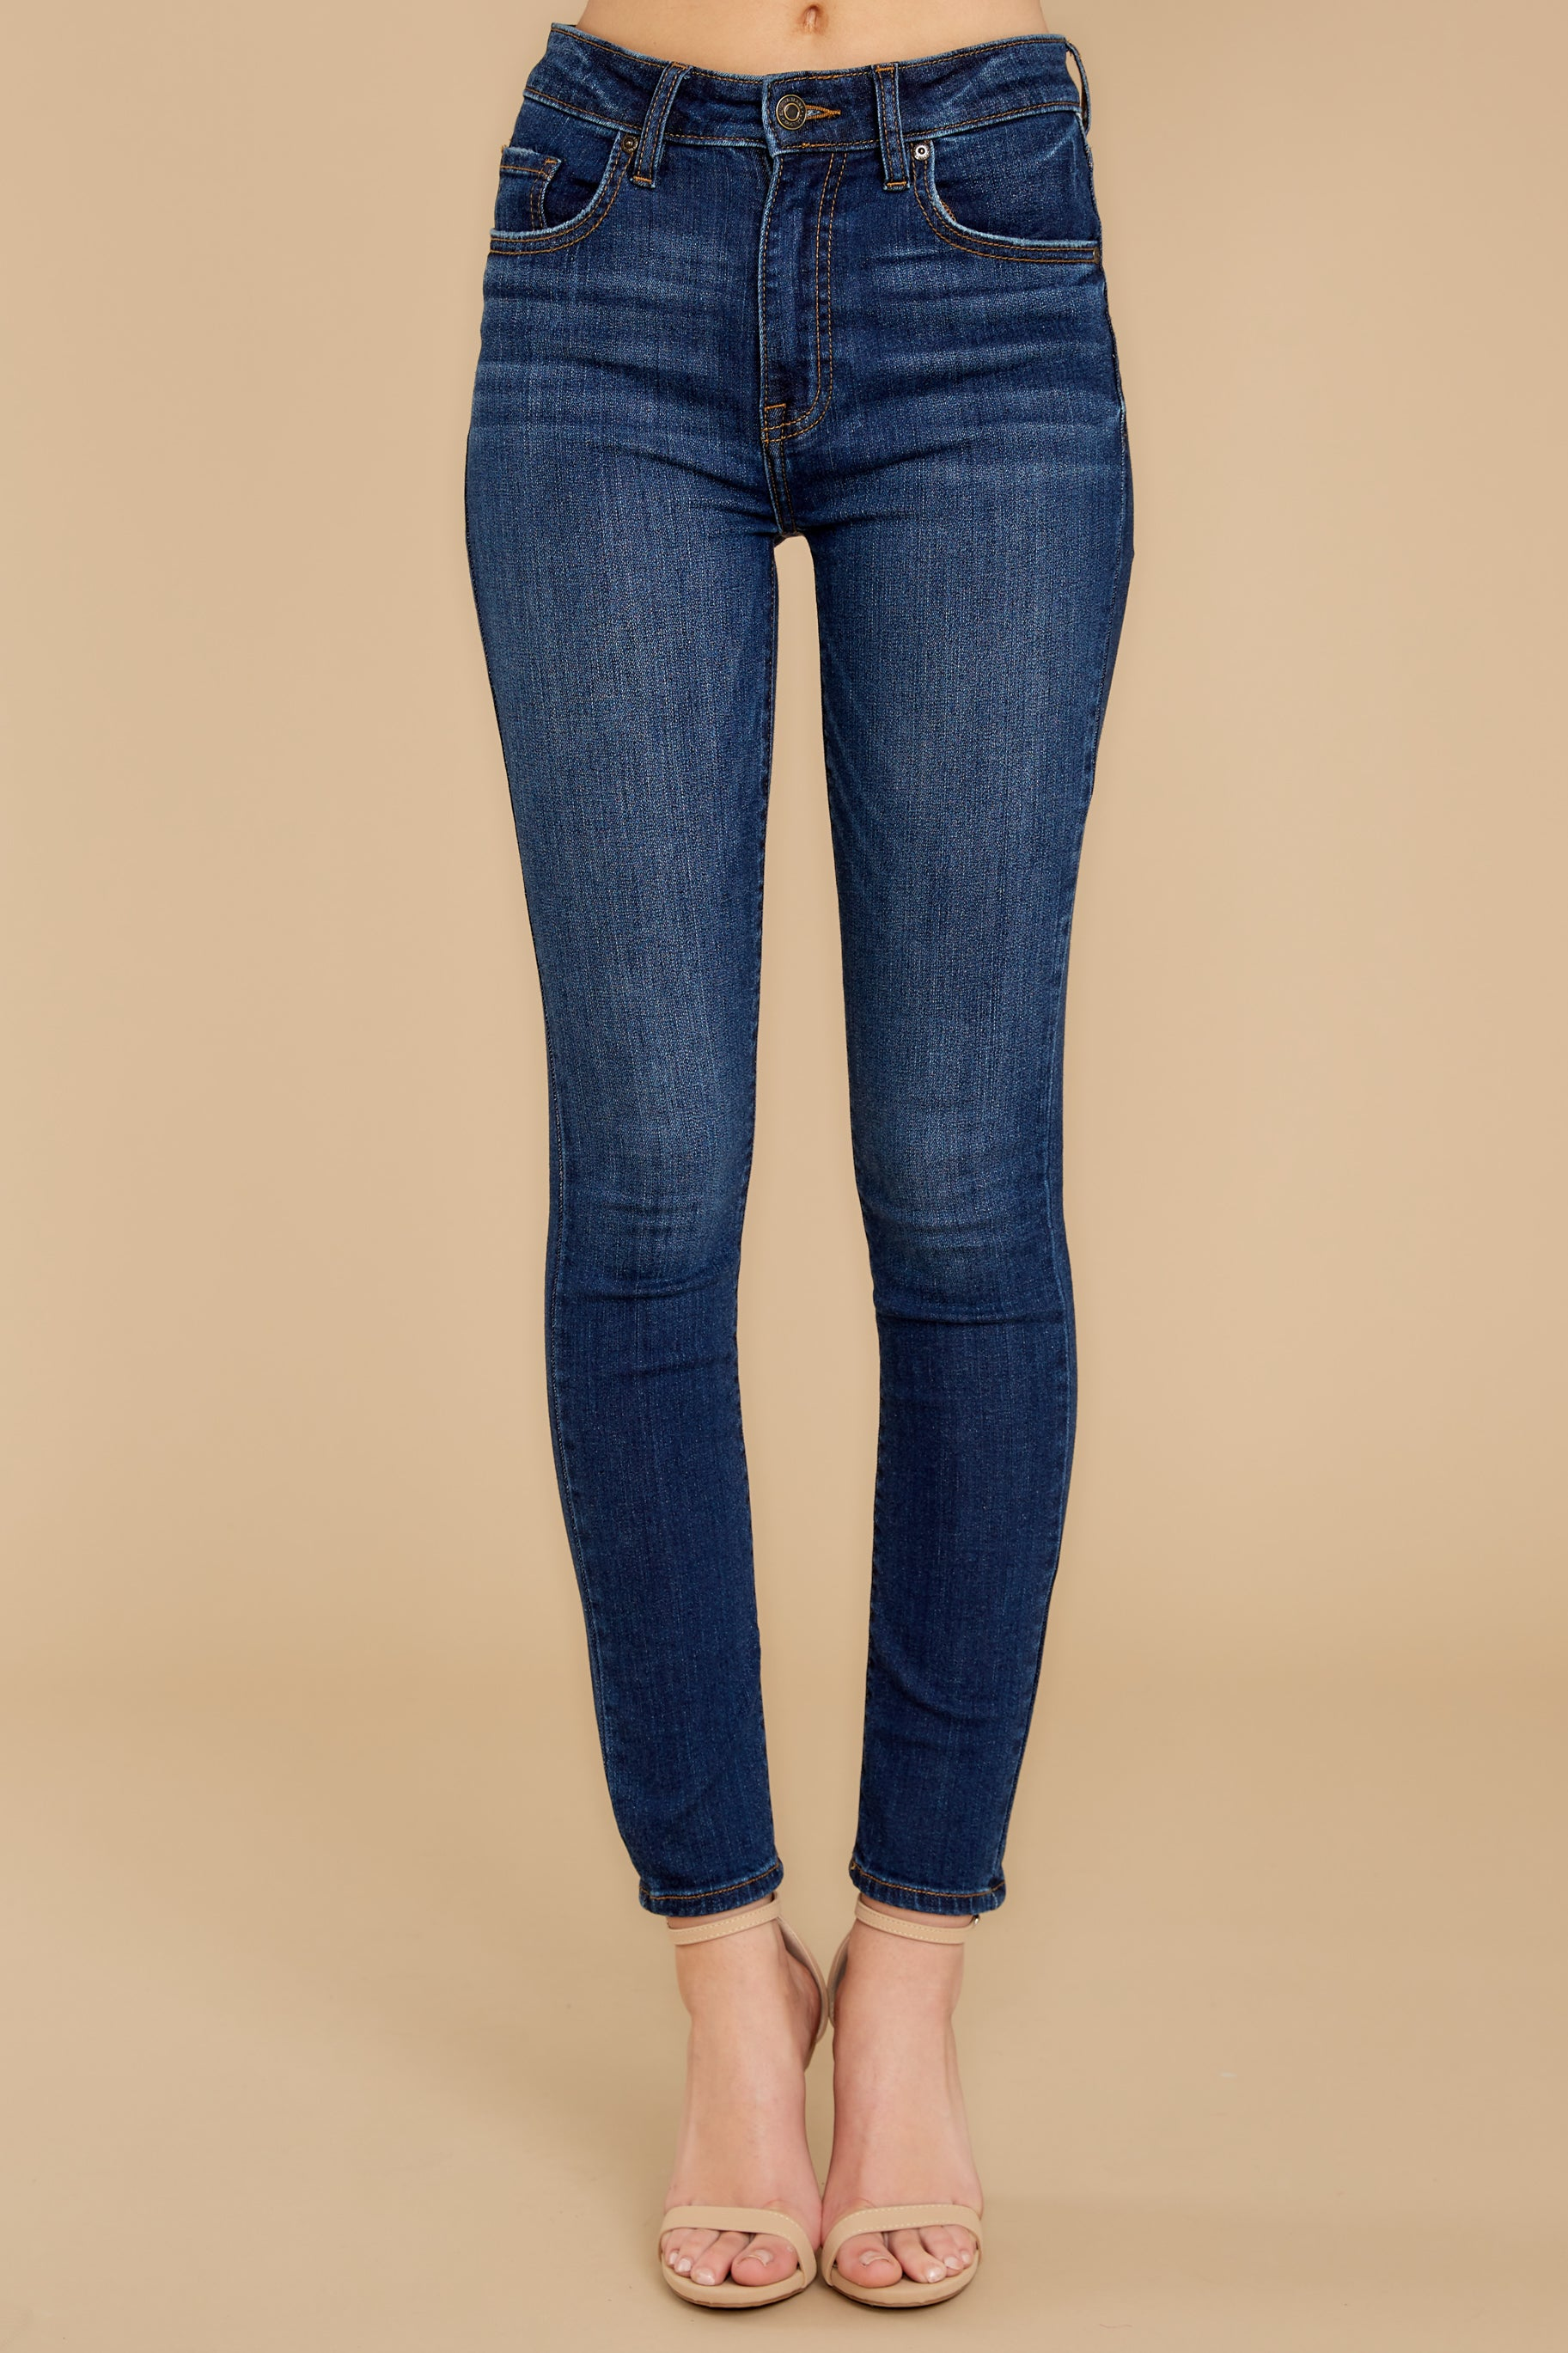 3 For The Win Dark Wash Skinny Jeans at reddressboutique.com